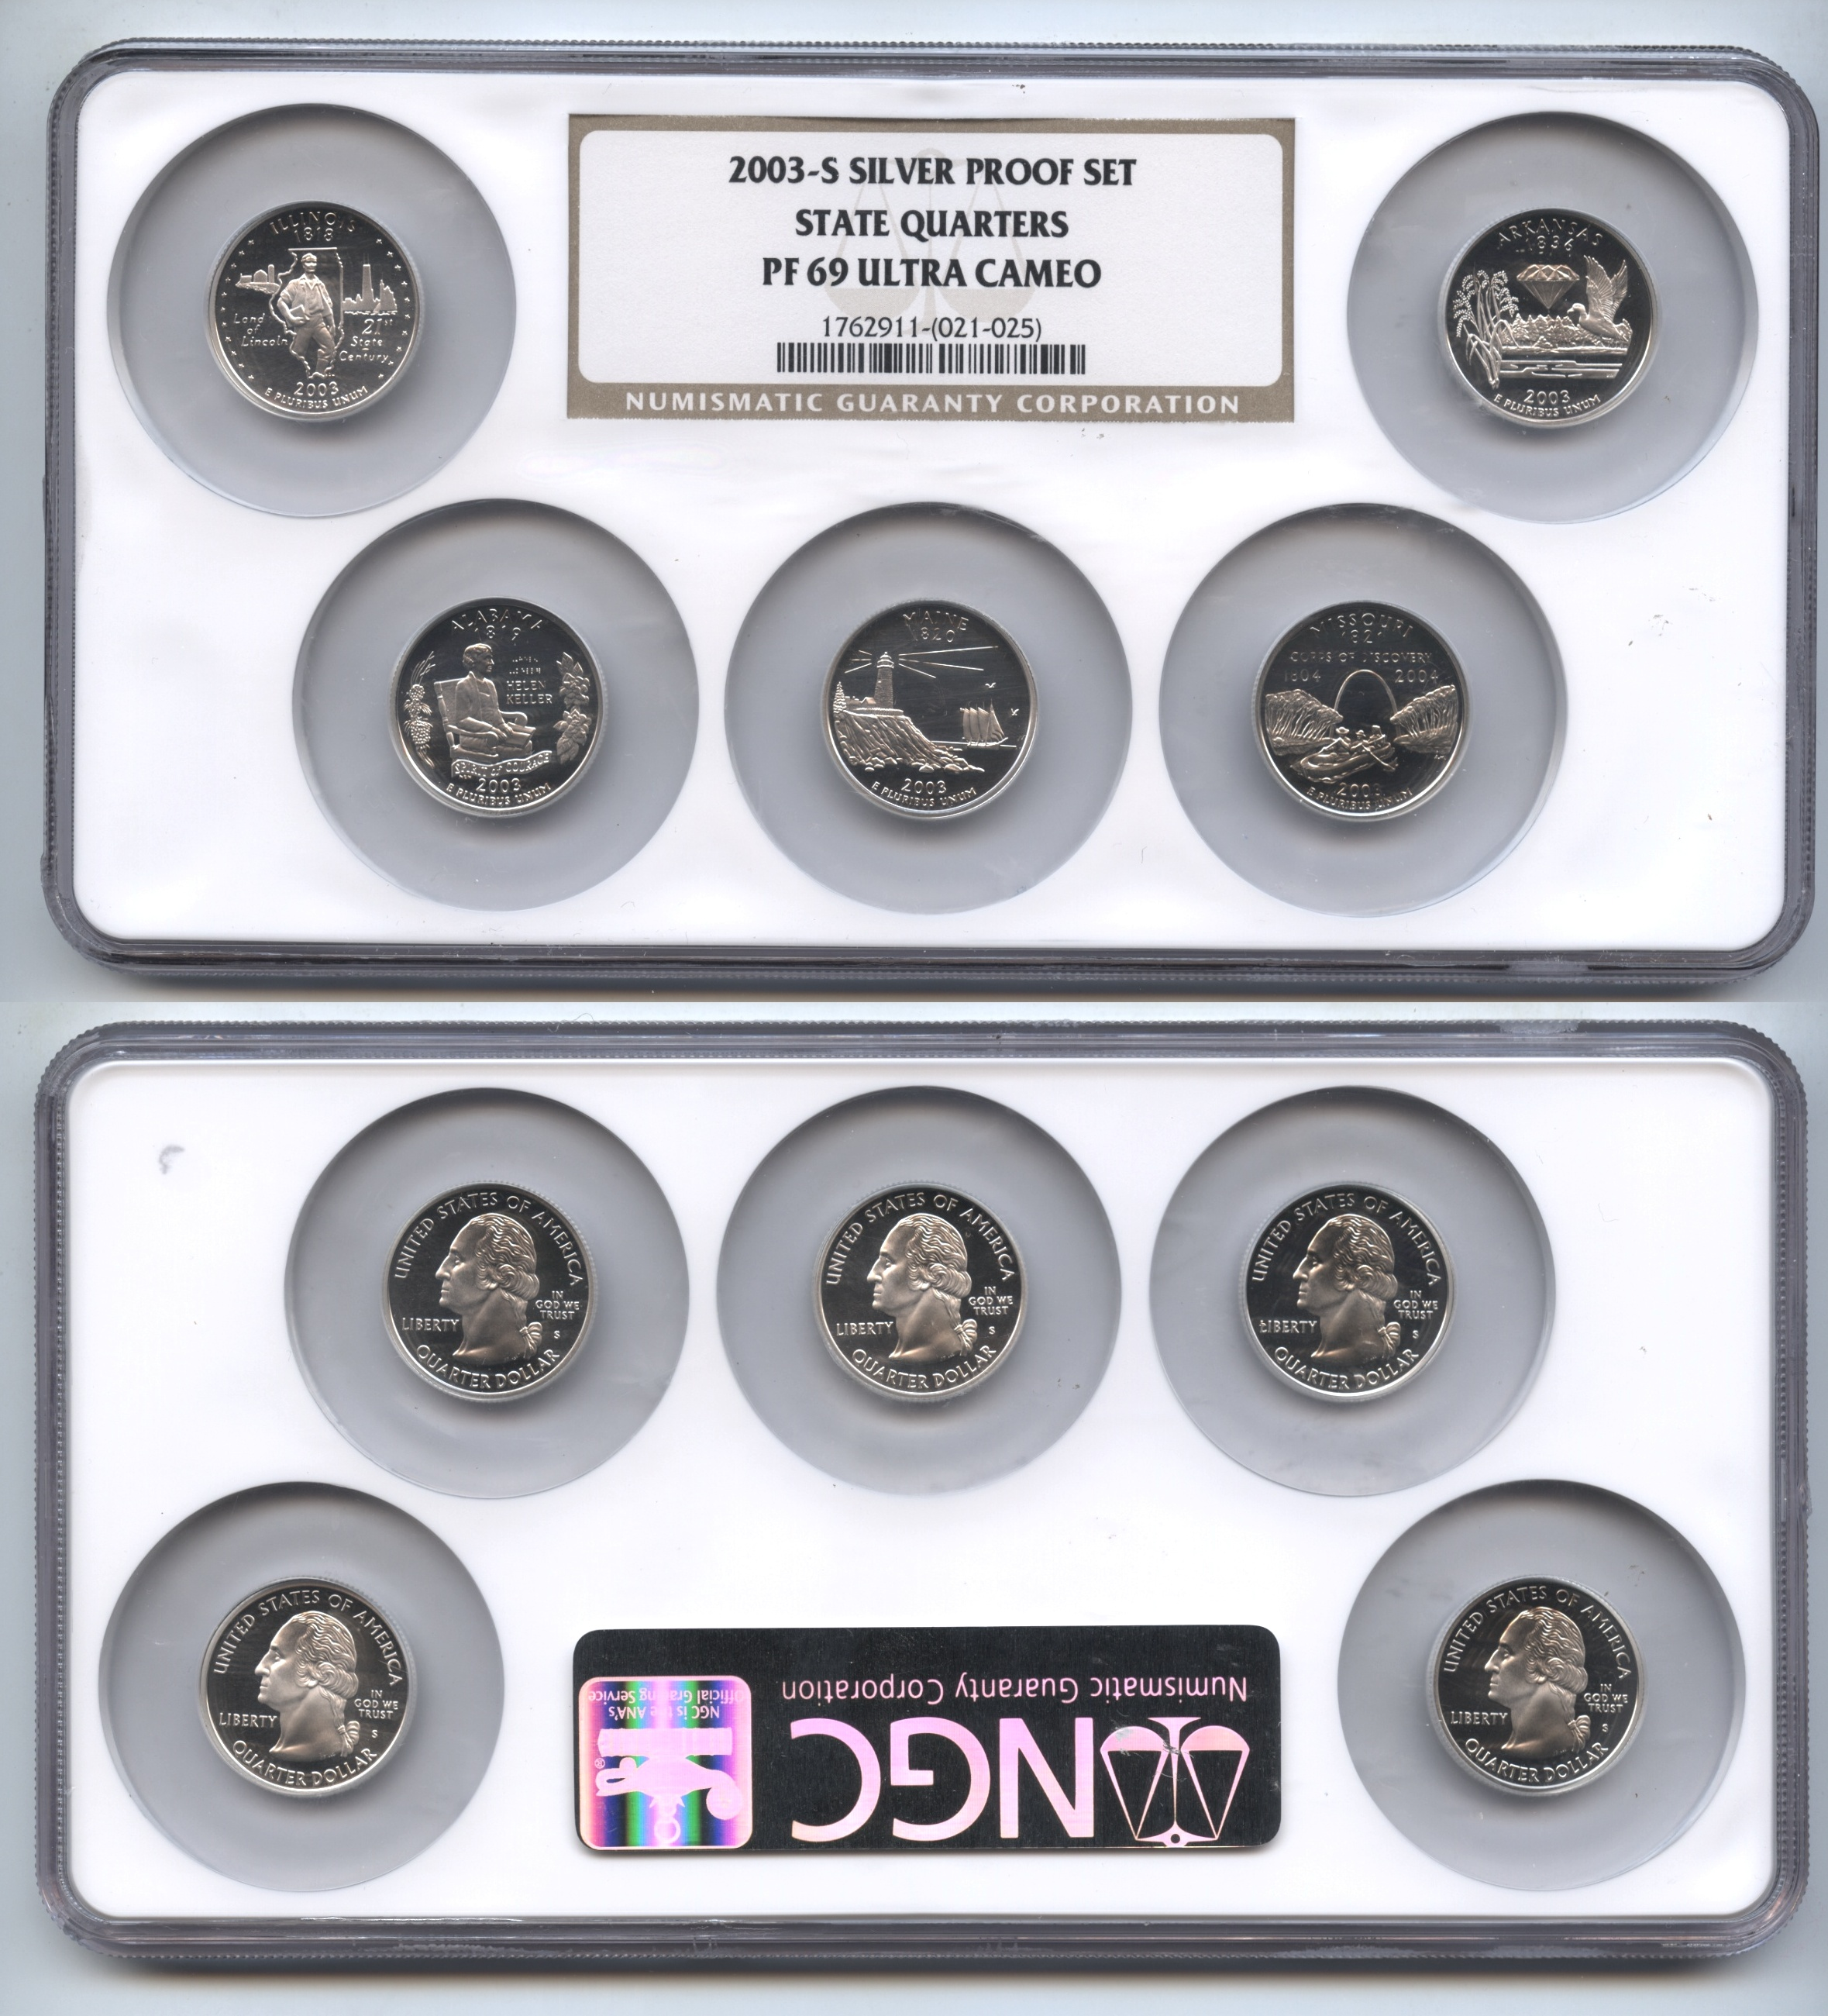 2003-S Silver Proof Set NGC Proof-69 Ultra Cameo